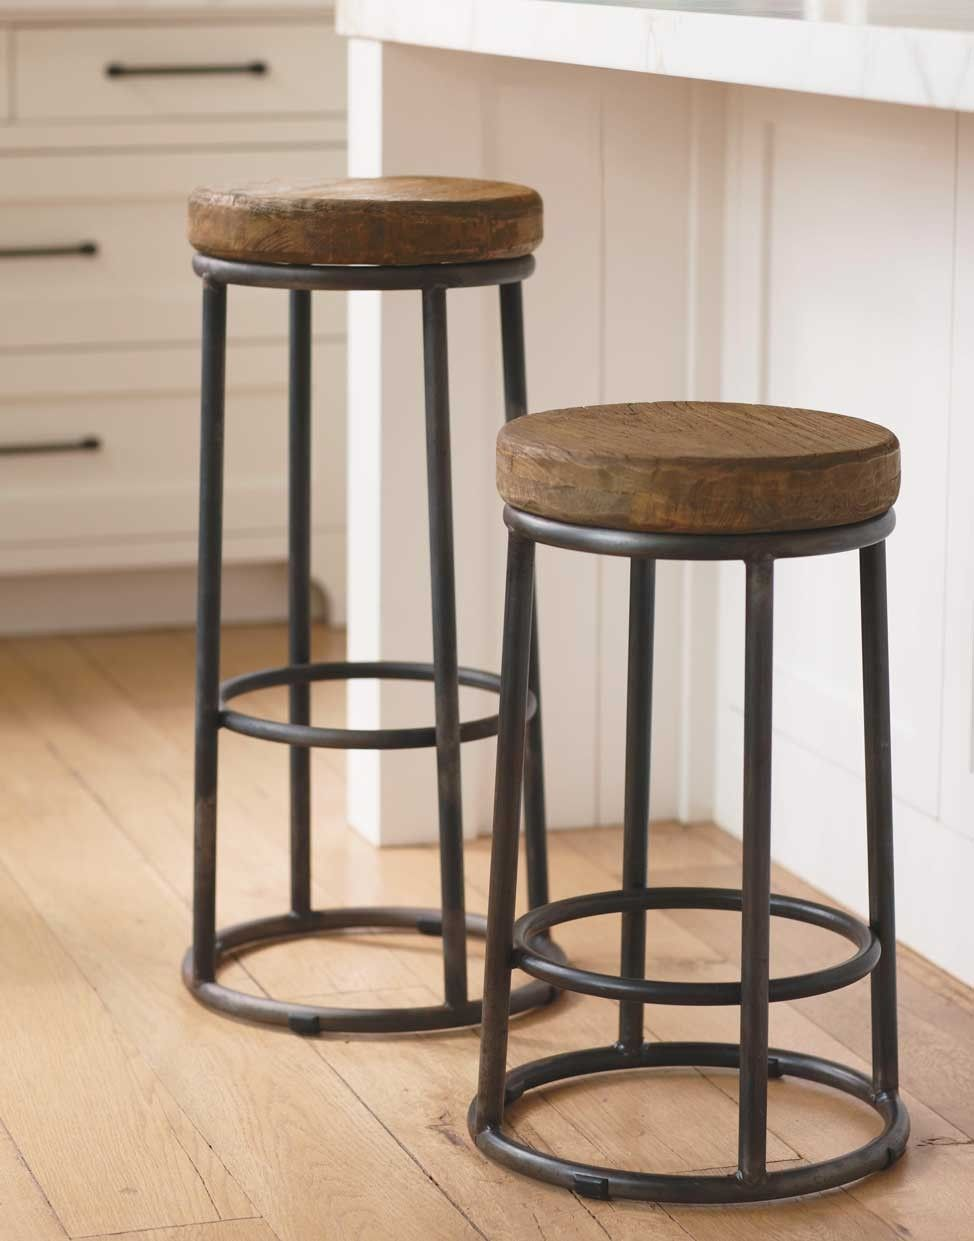 Vintage Bar Stools With Seats Of Reclaimed Wood And Metal Legs